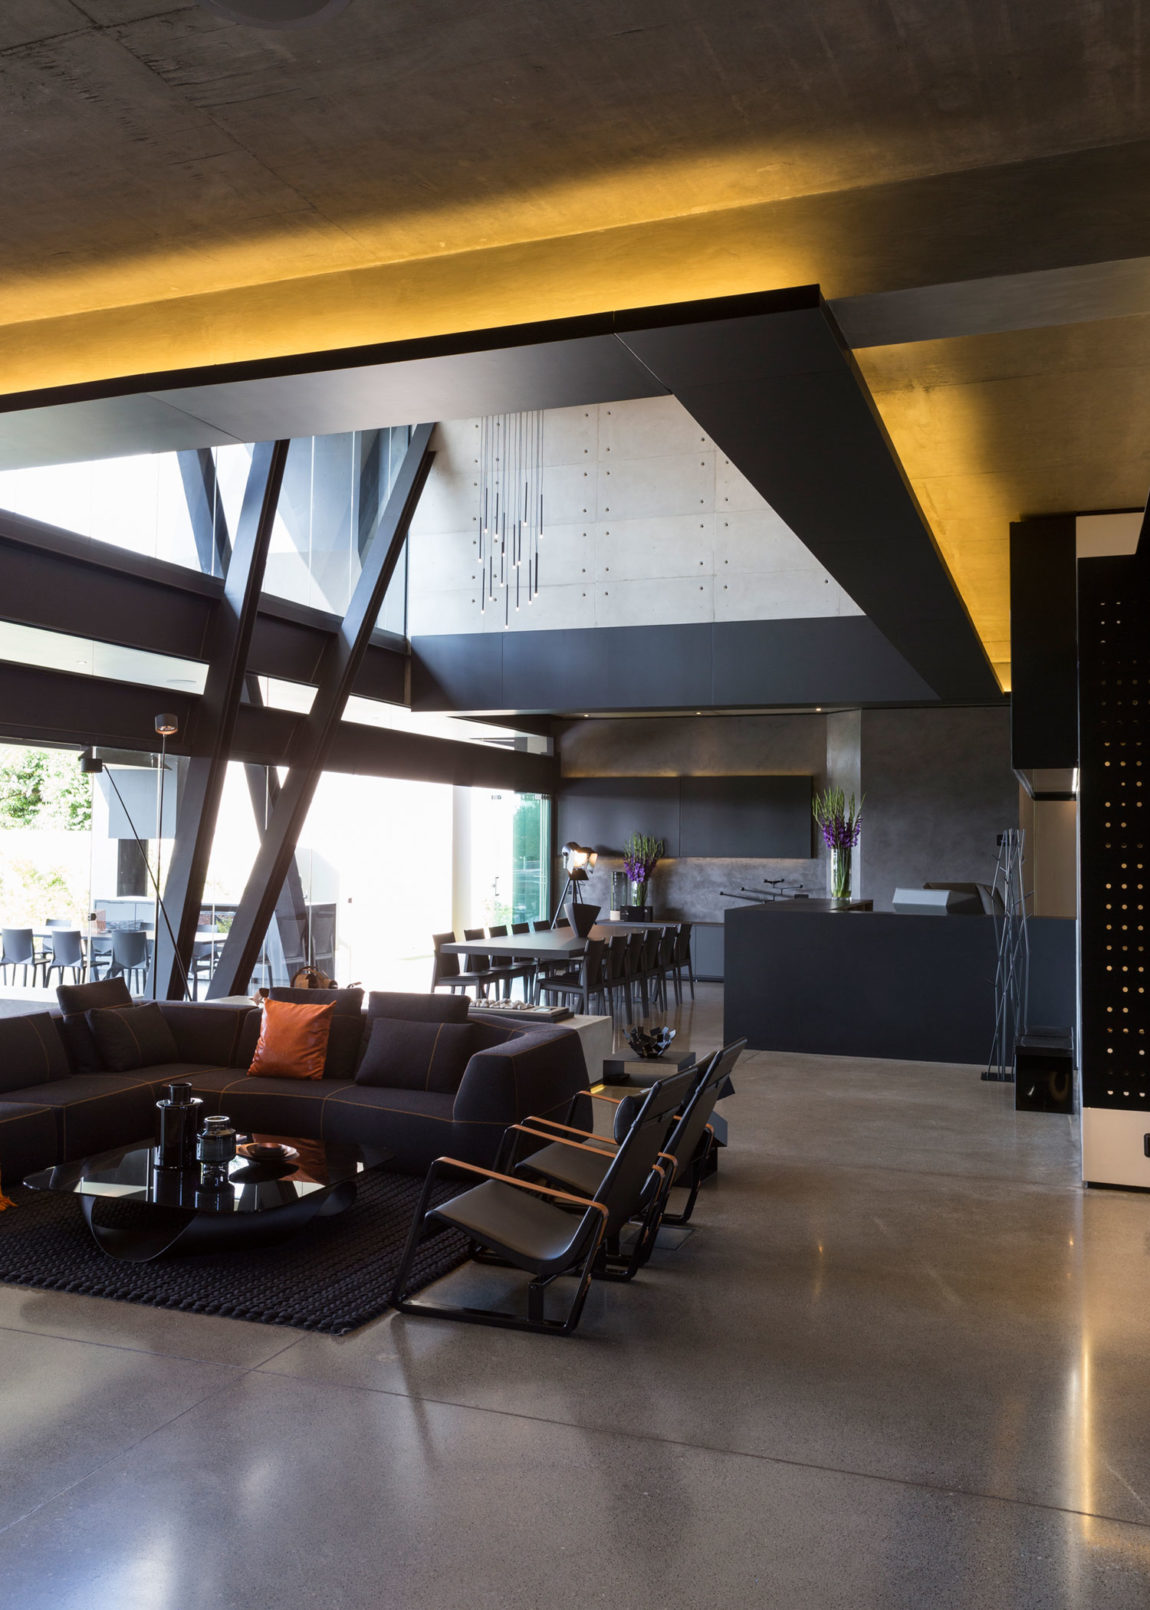 Kloof Road House by Nico van der Meulen Architects (7)